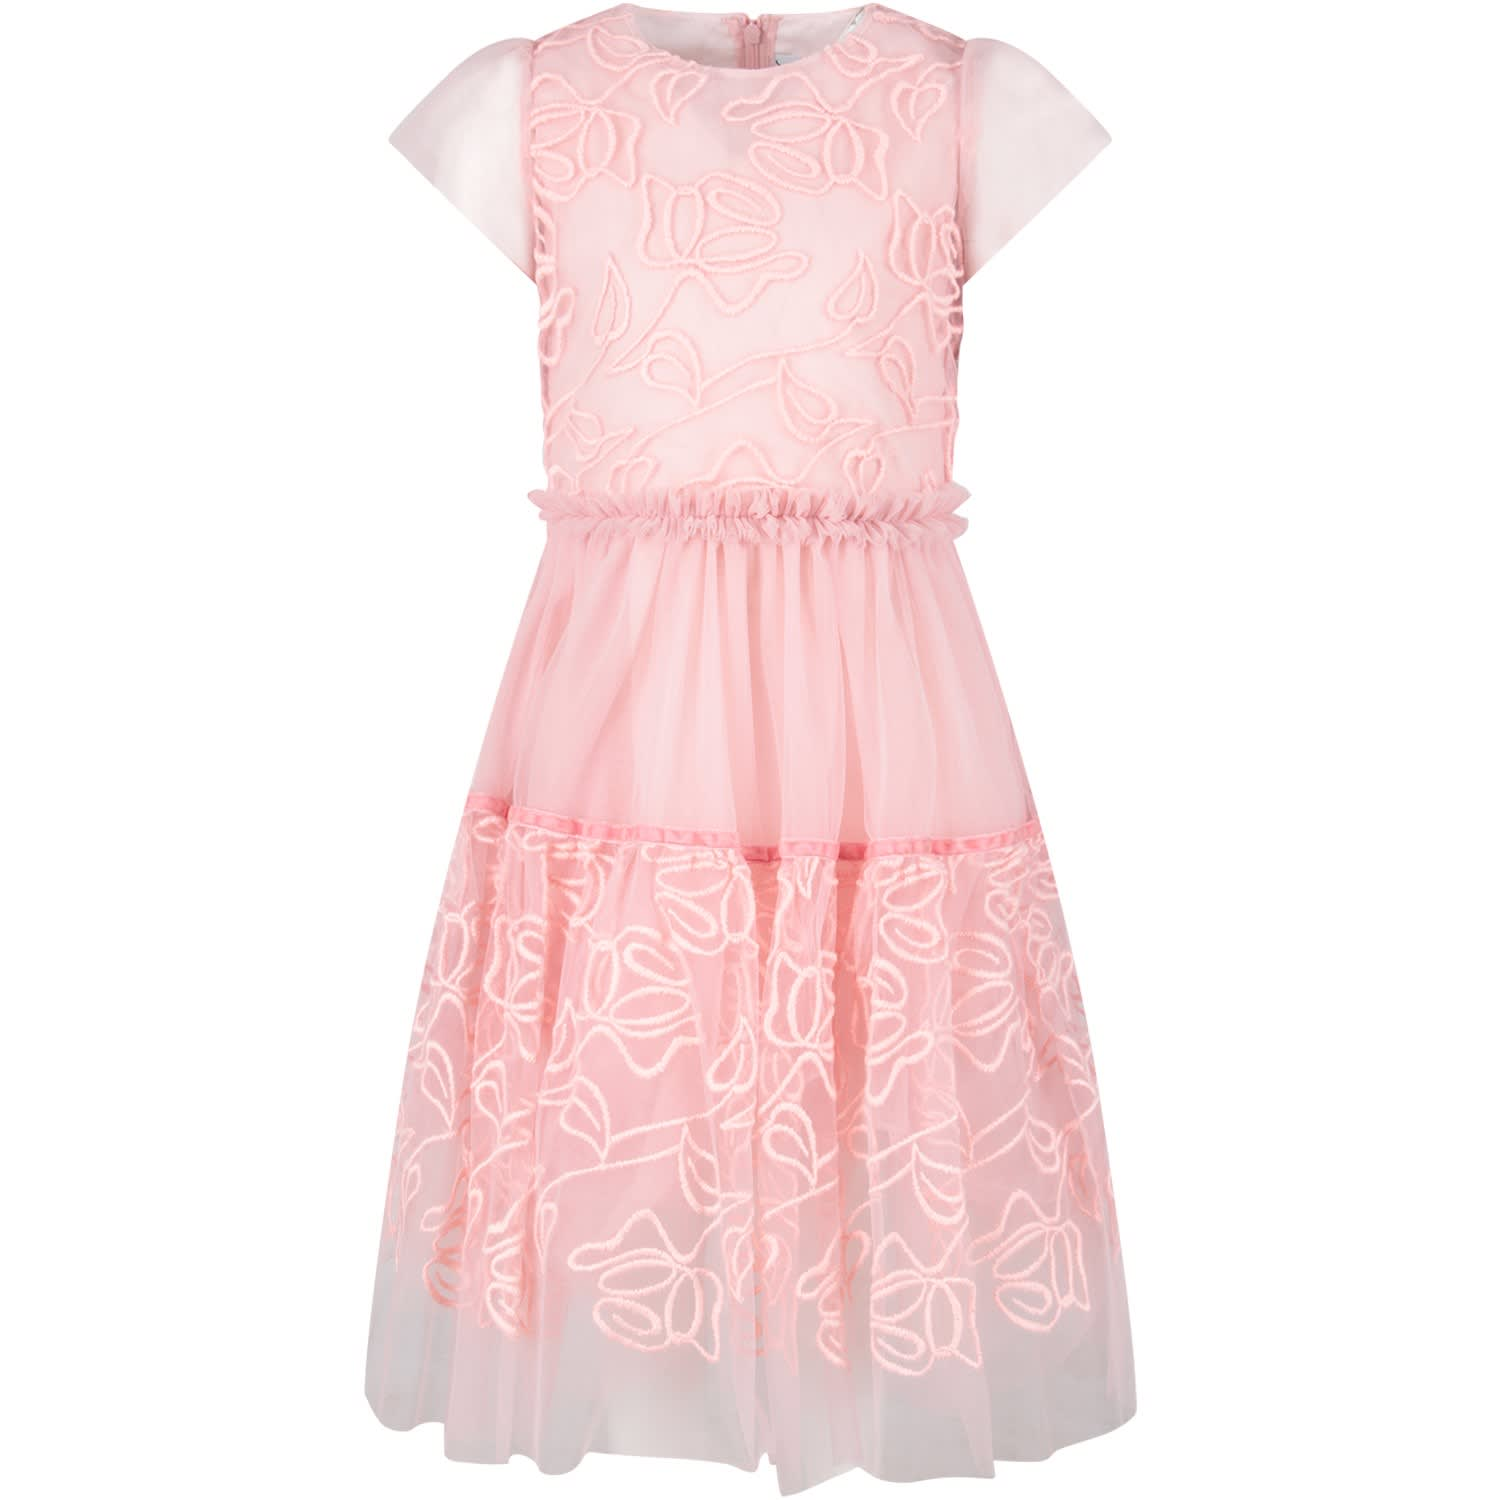 Simonetta Pink Girl Dress With Roses